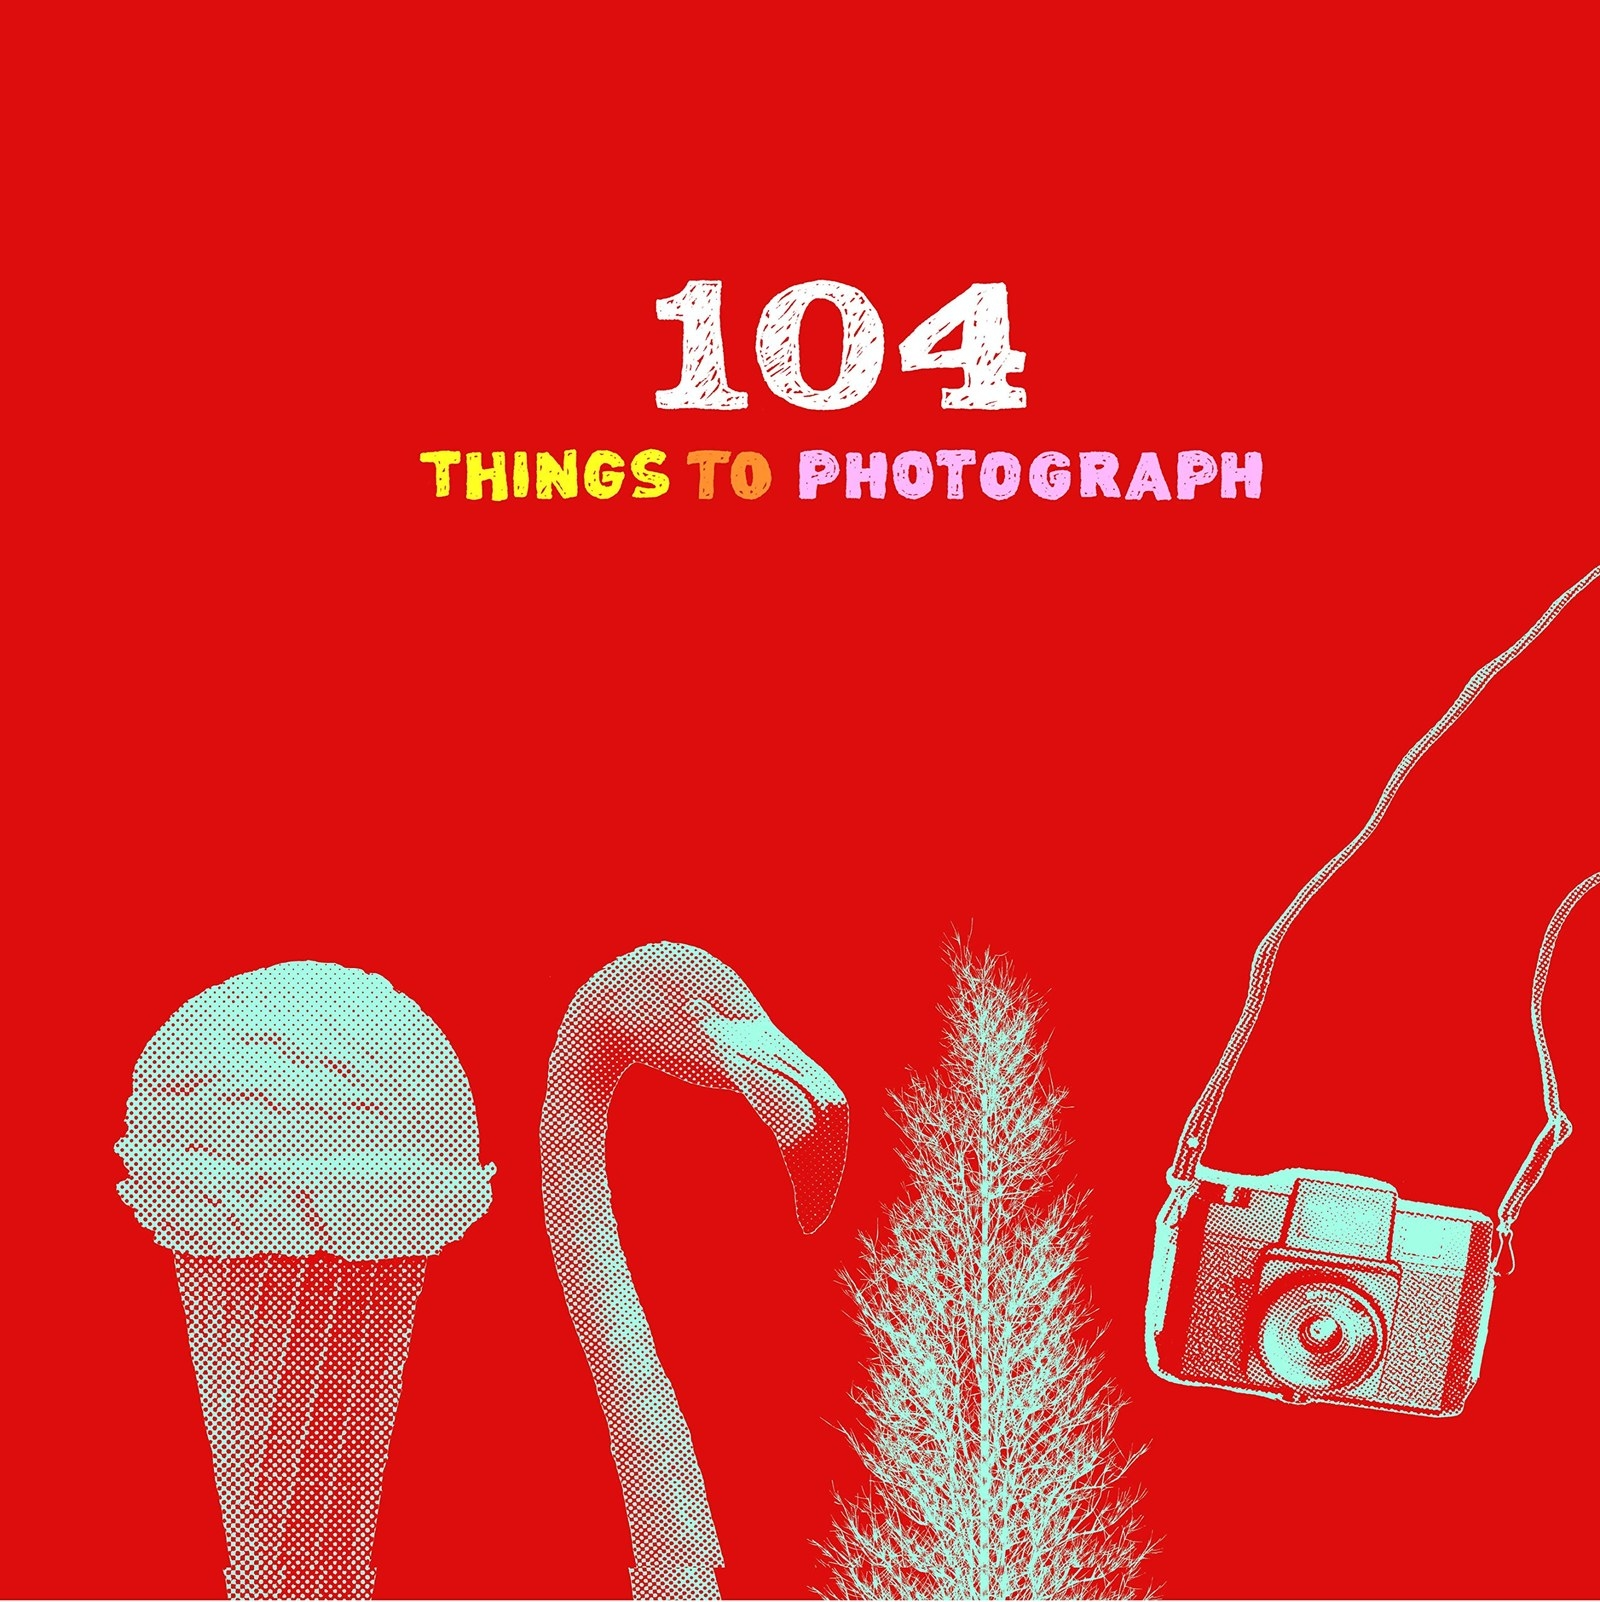 101 Things To Photograph